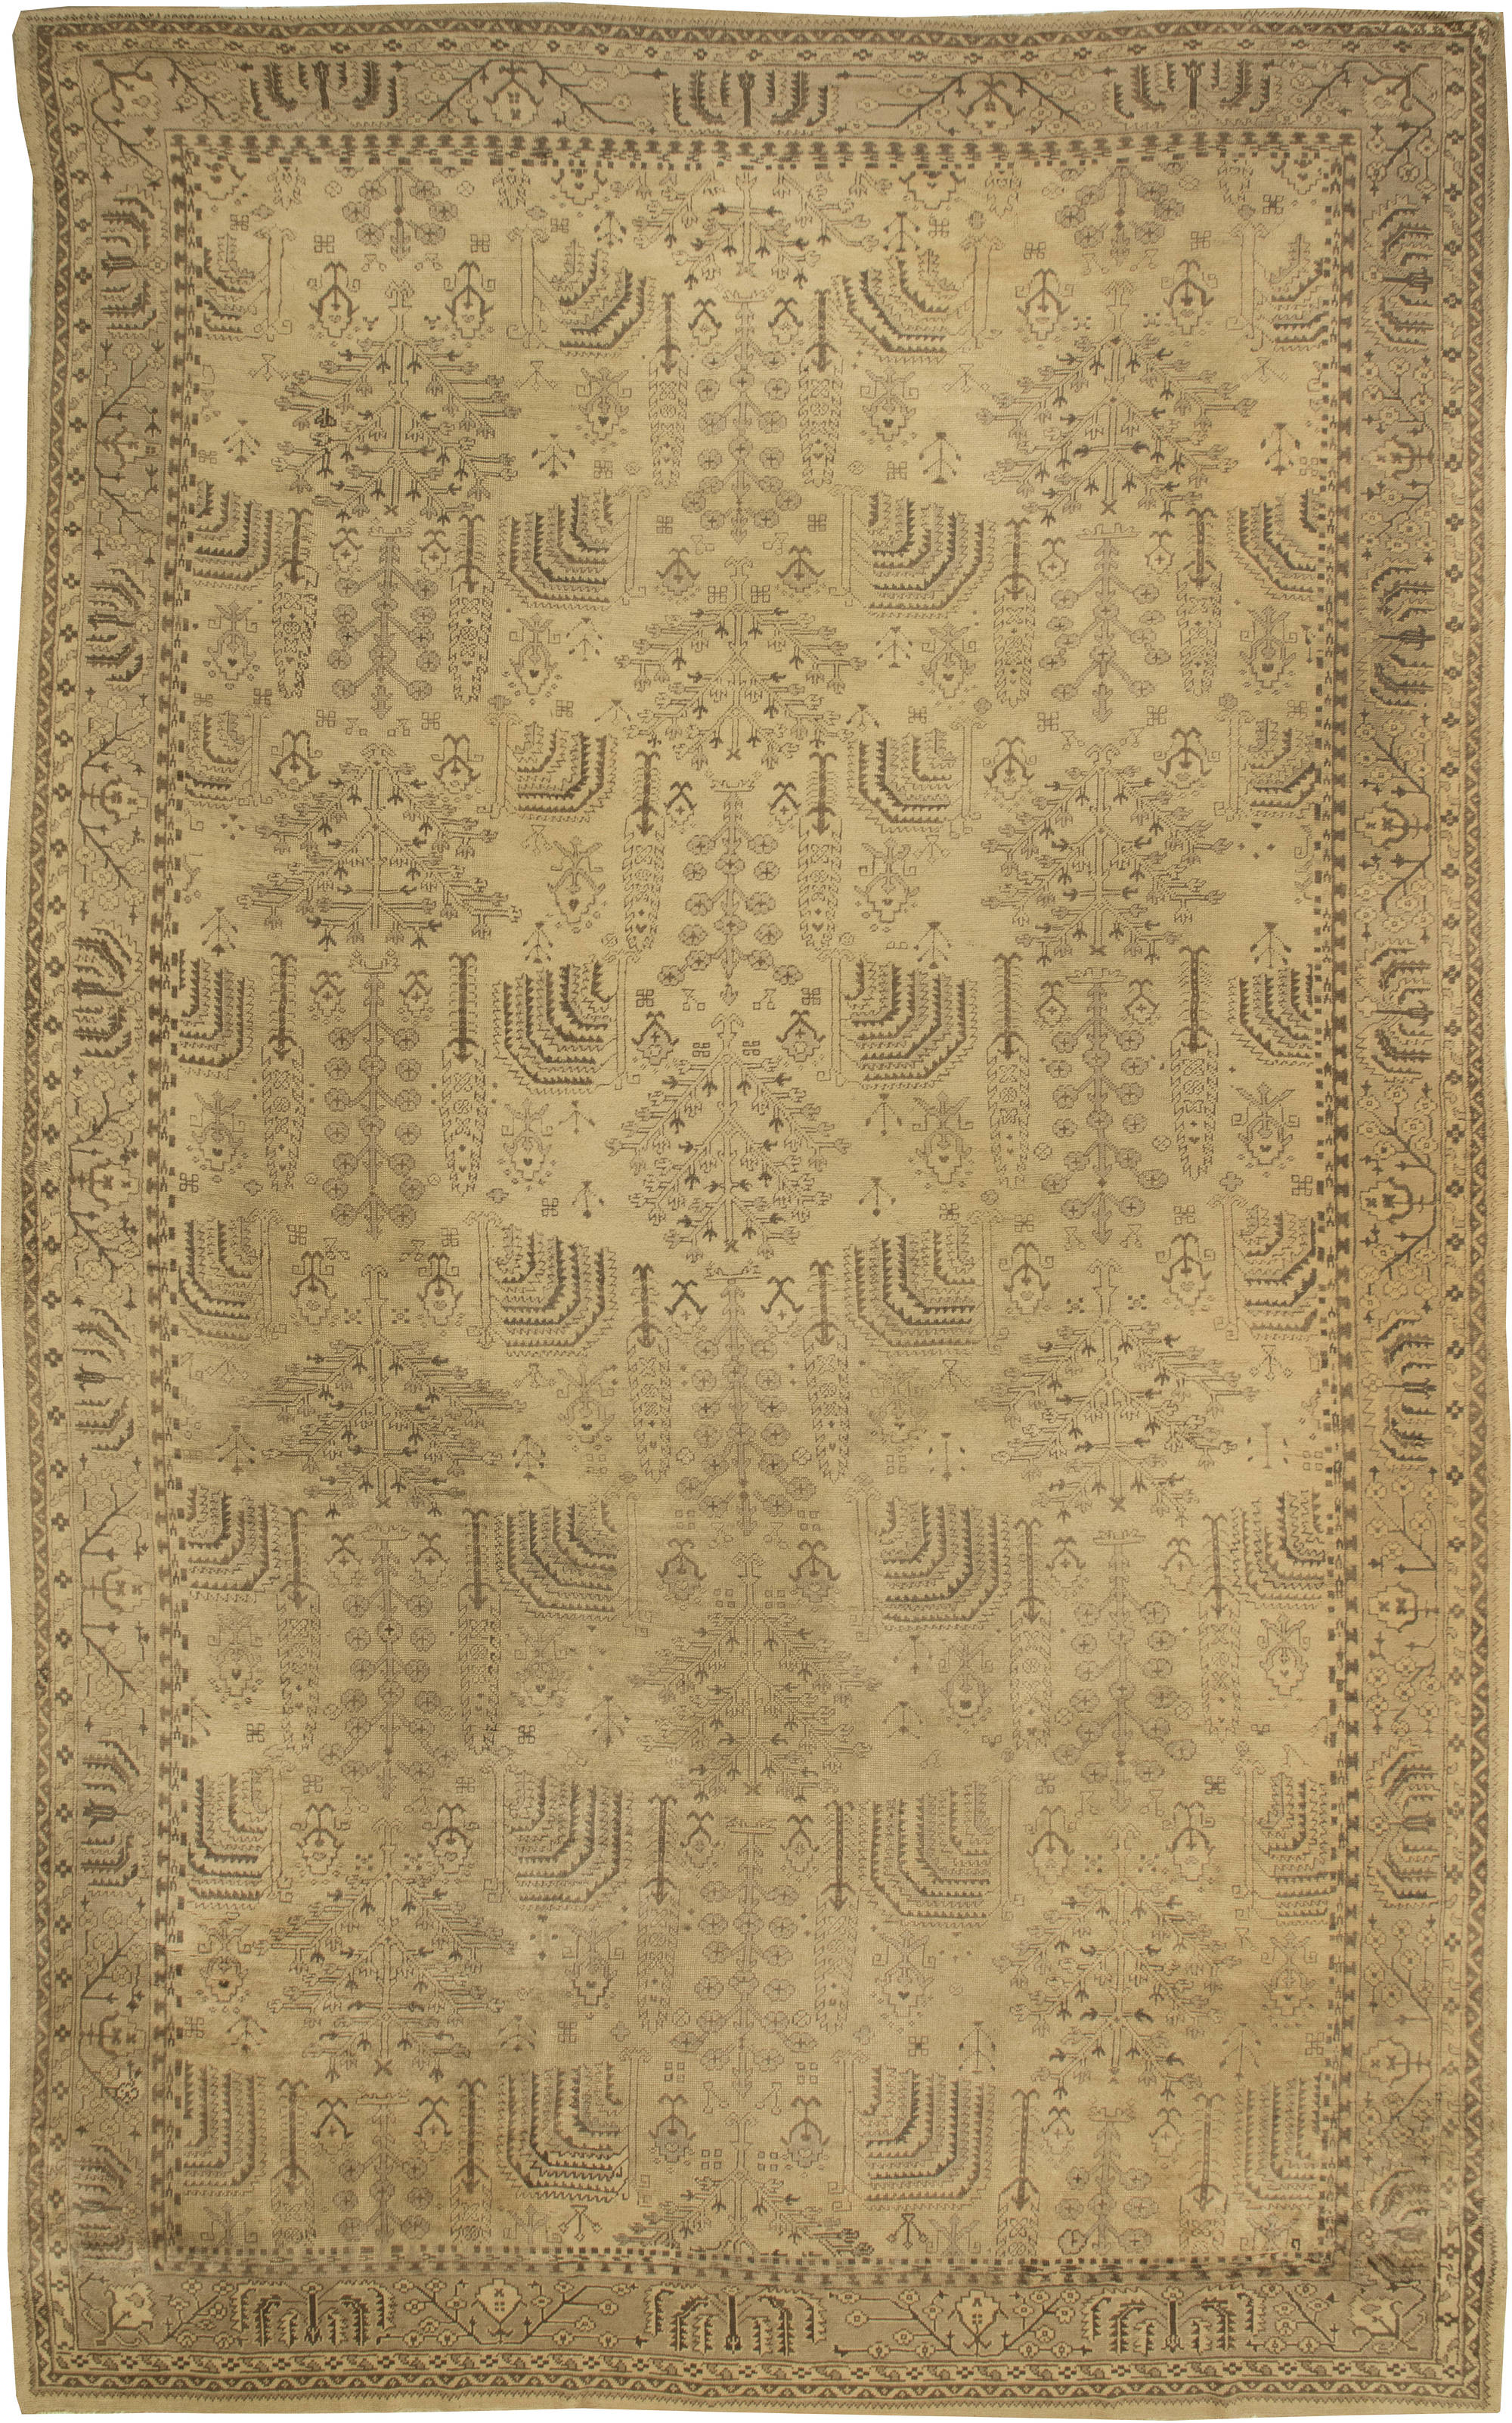 a center rugs turkish of design kula antique piece rug by sold genuine circa santa art carpet barbara woven